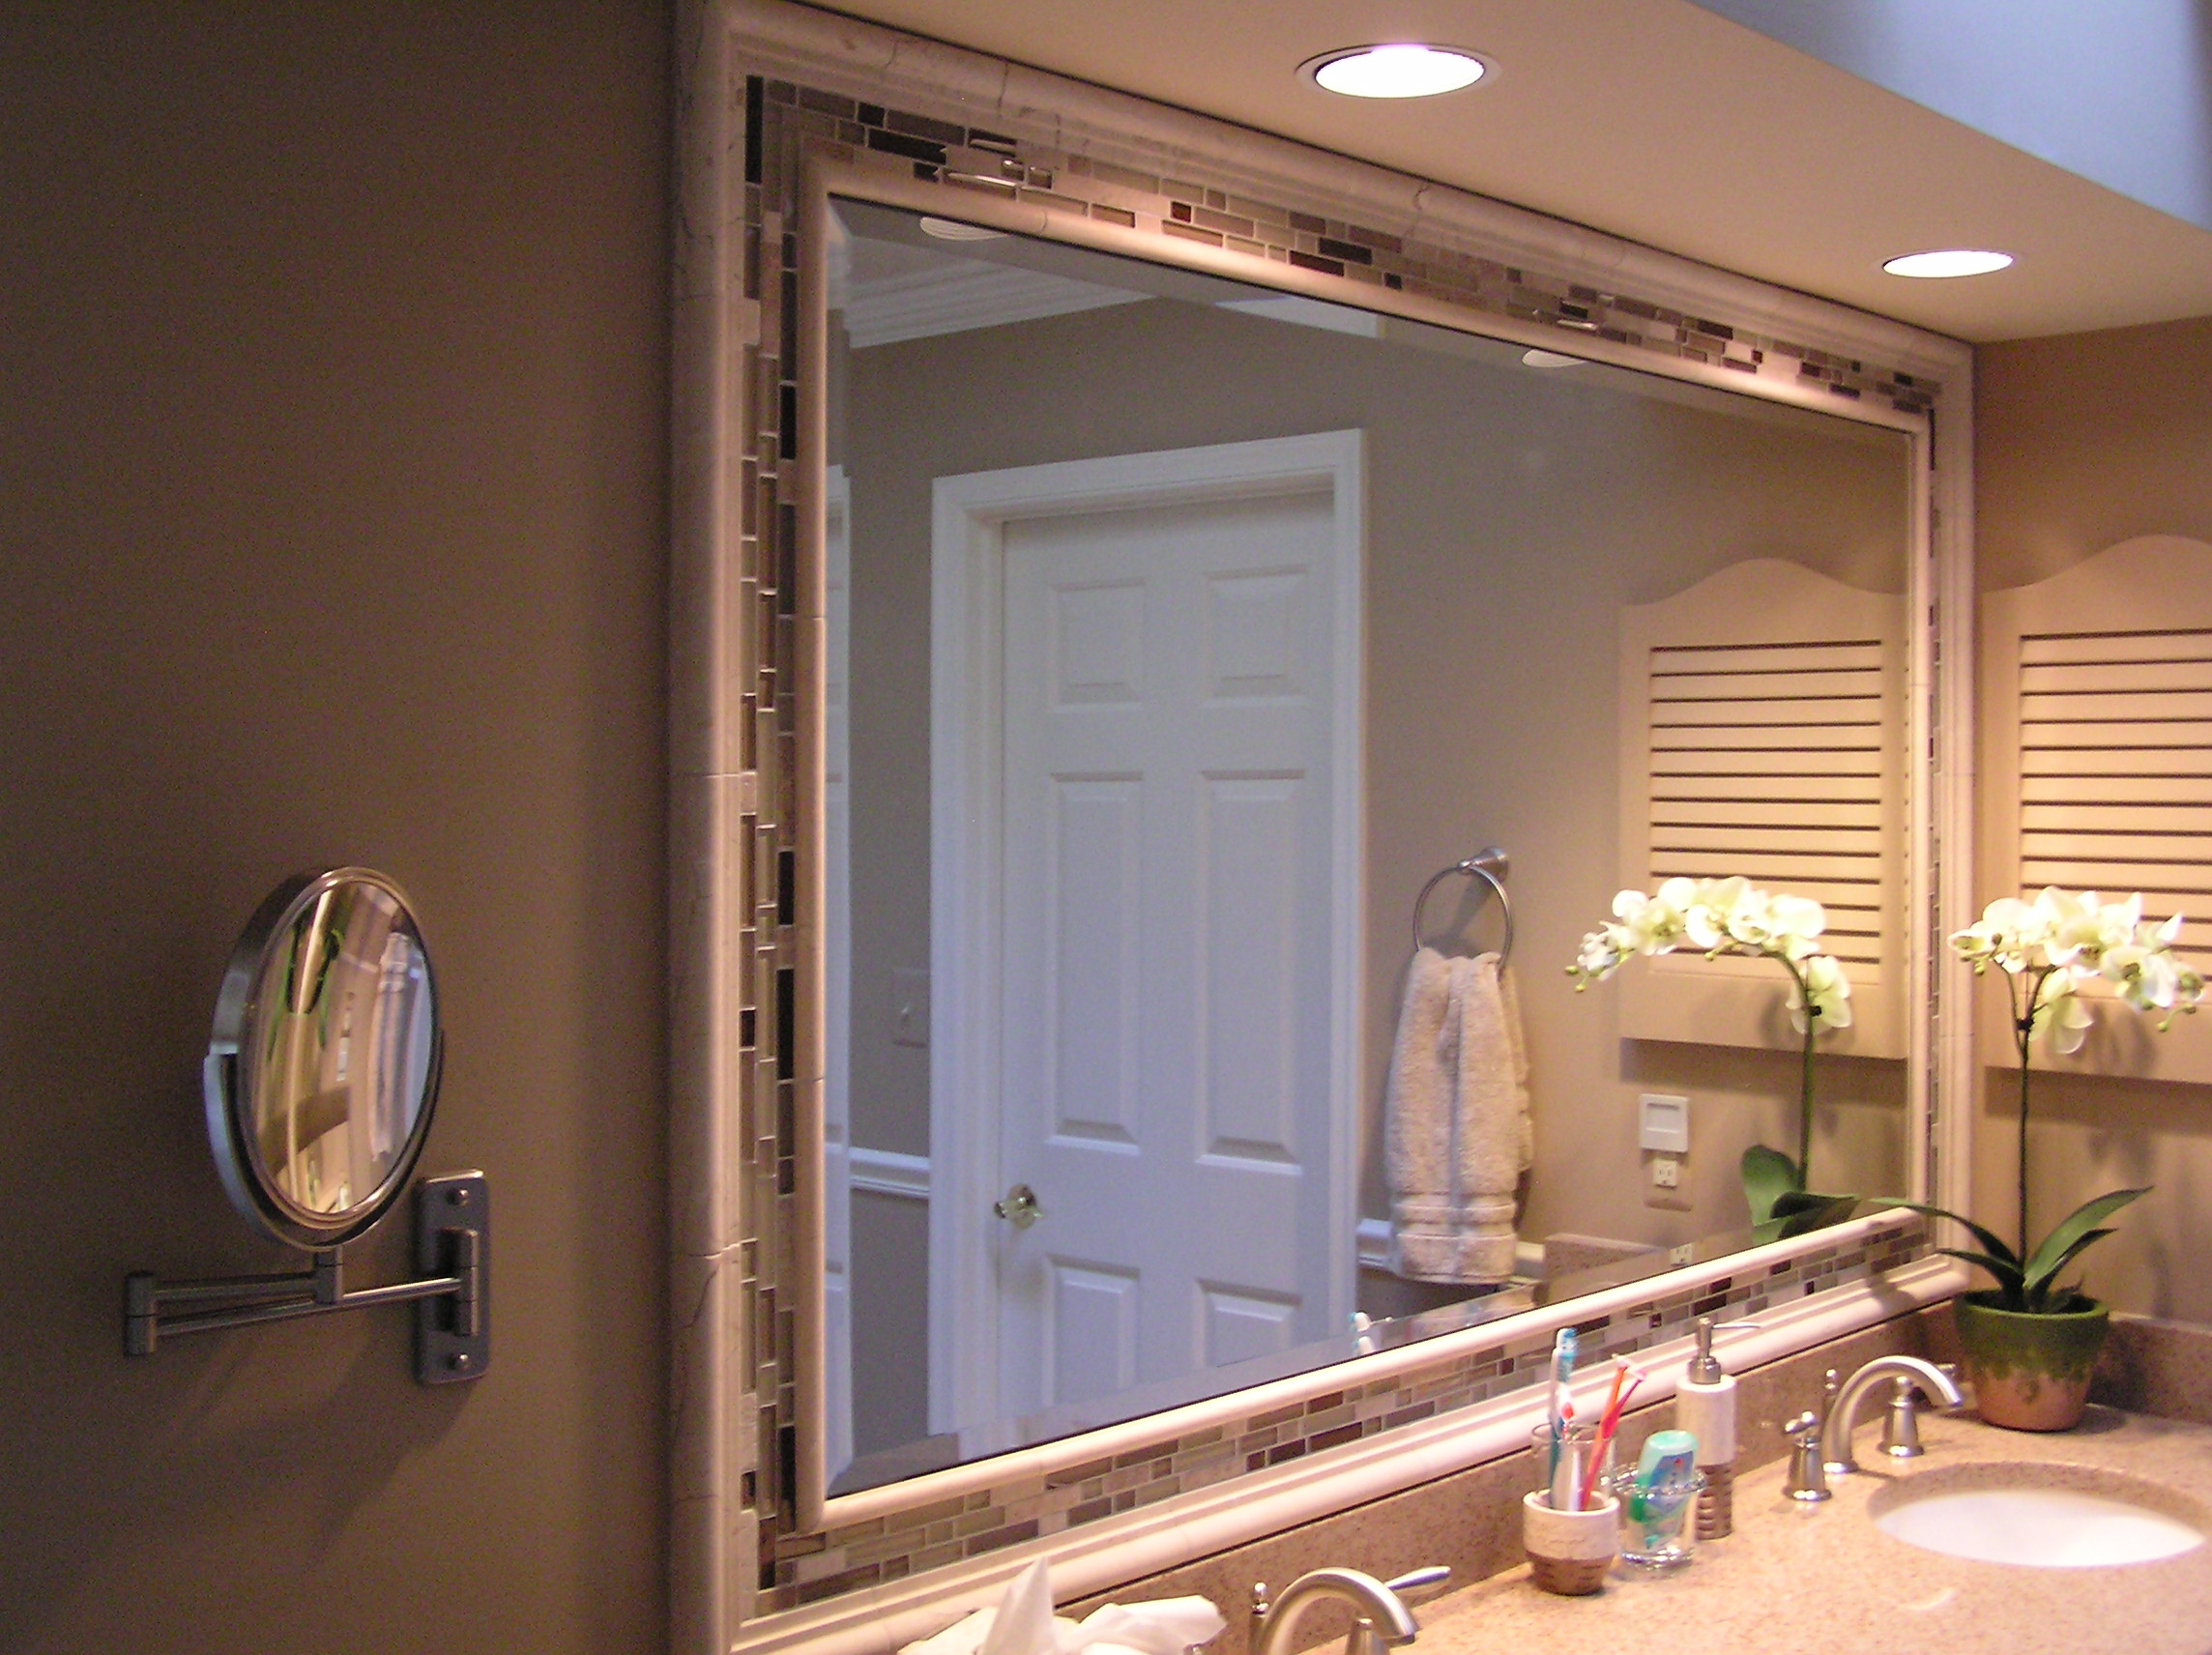 Bathroom vanity mirror ideas large and beautiful photos for Mirror design